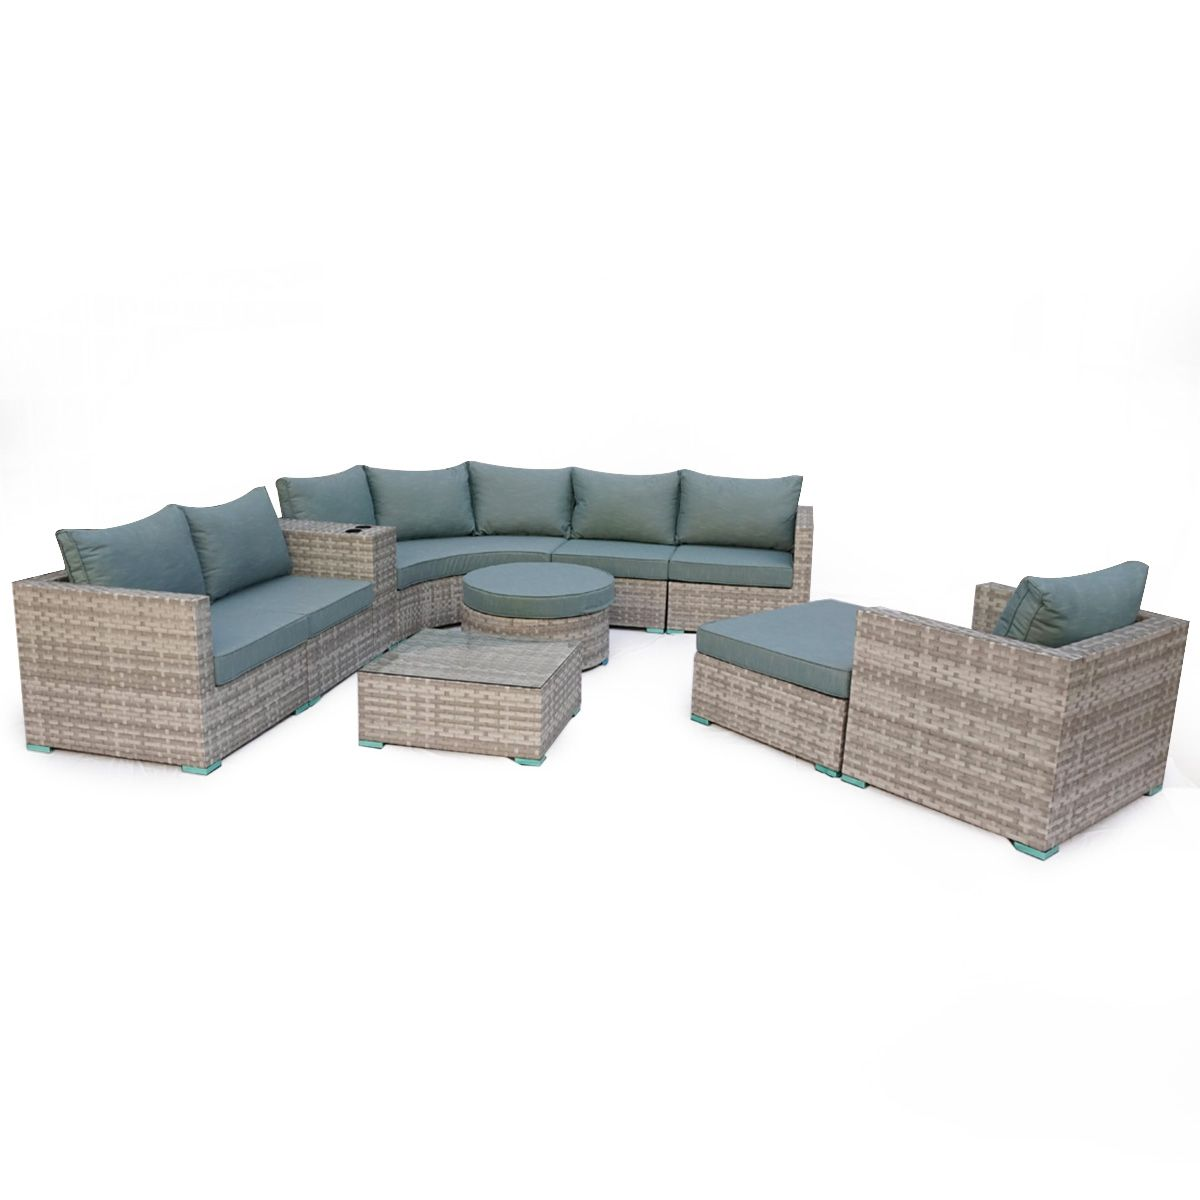 Rattan Corner Lounge Set Sofa Dining Table Stool Wicker Weave Garden Patio Yard Set Sofa Patio Stool